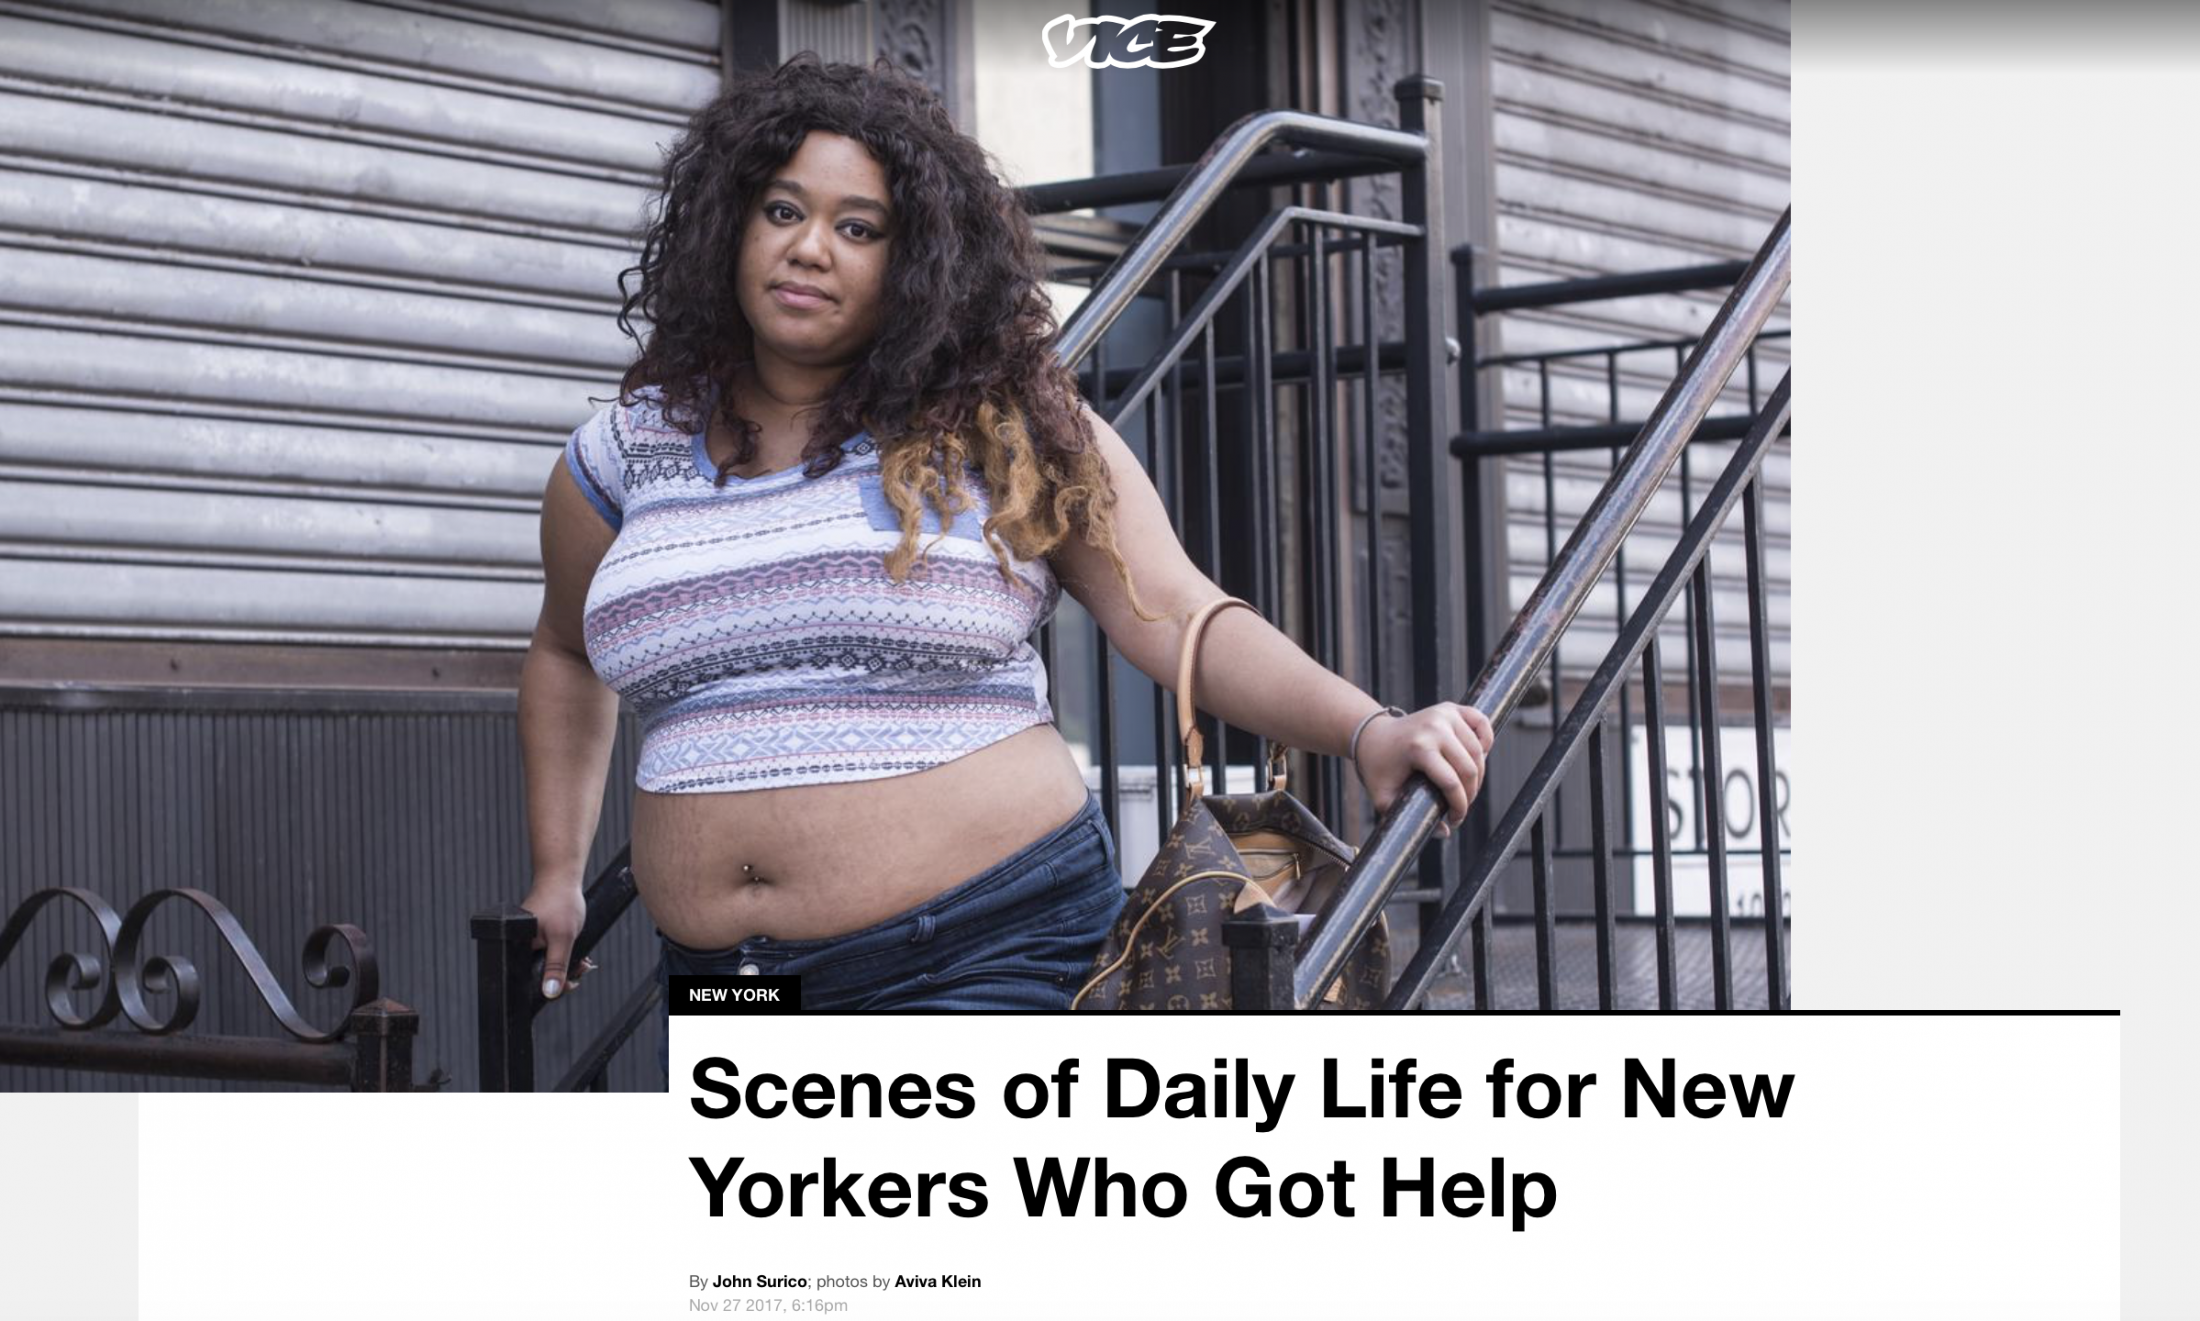 VICE Scenes of Daily Life for New Yorkers Who Got Help